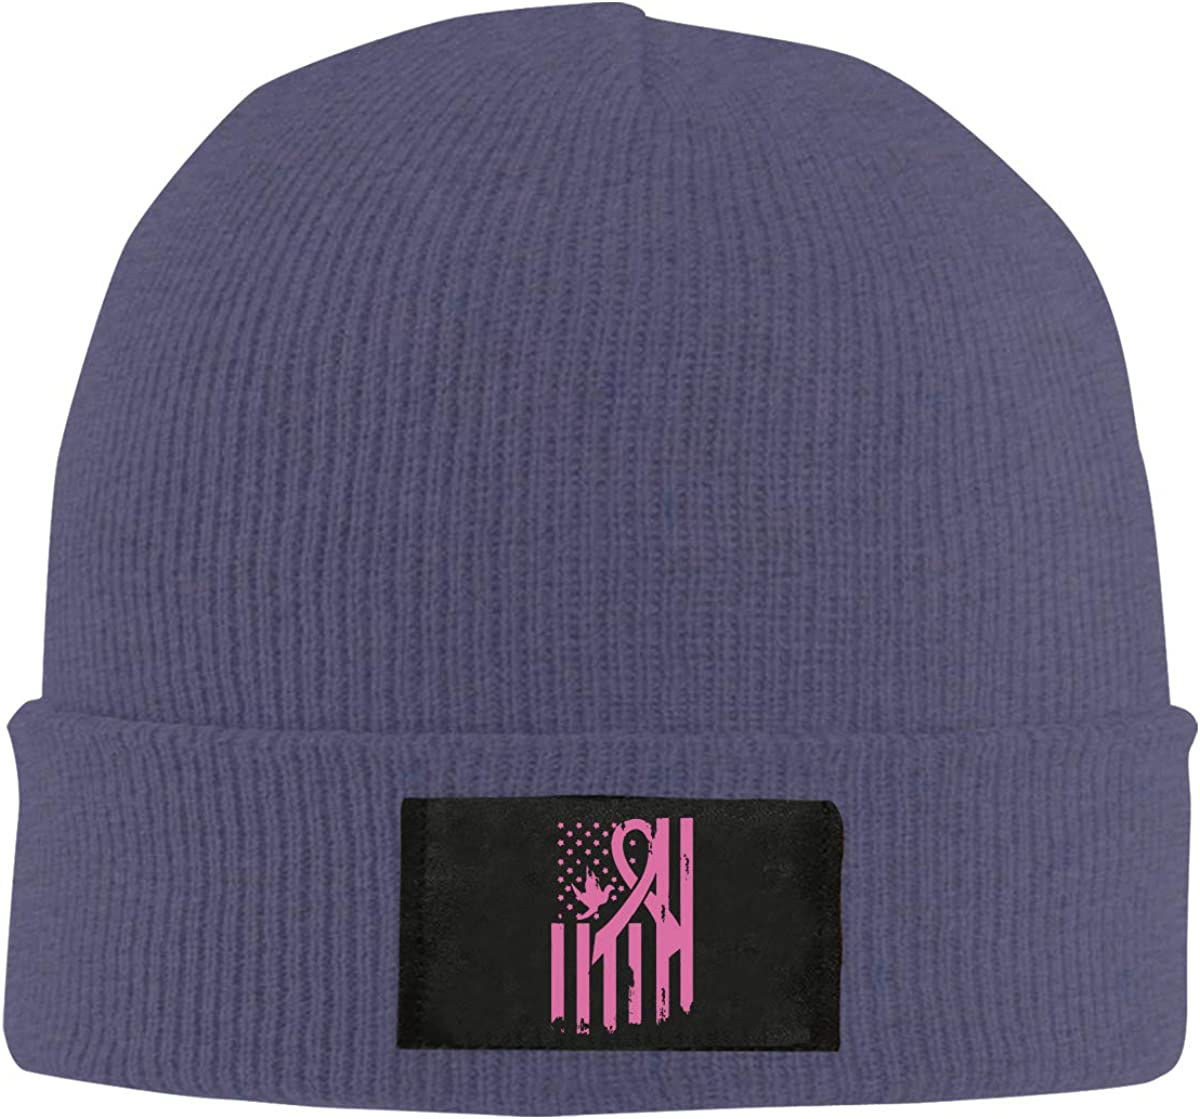 Breast Cancer Awareness USA Flag Unisex Knitted Hat Stretchy Fleece Beanie Hat